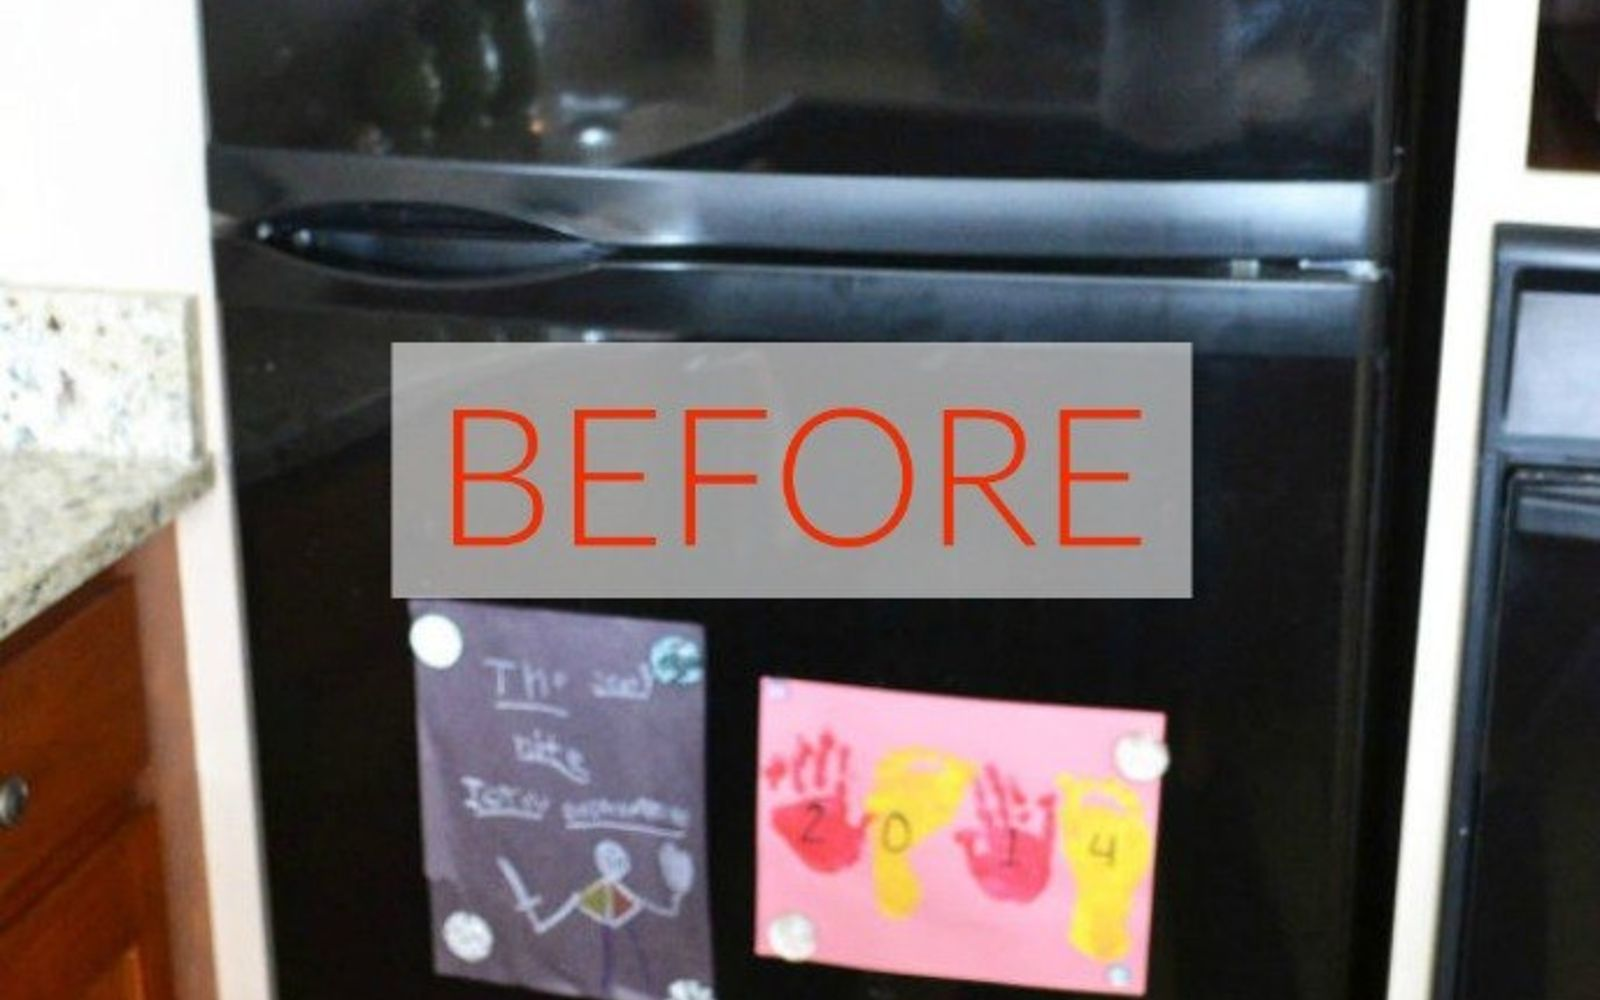 s don t buy new appliances these 9 diy hacks are brilliant, appliances, Before A glossy black and reflective fridge